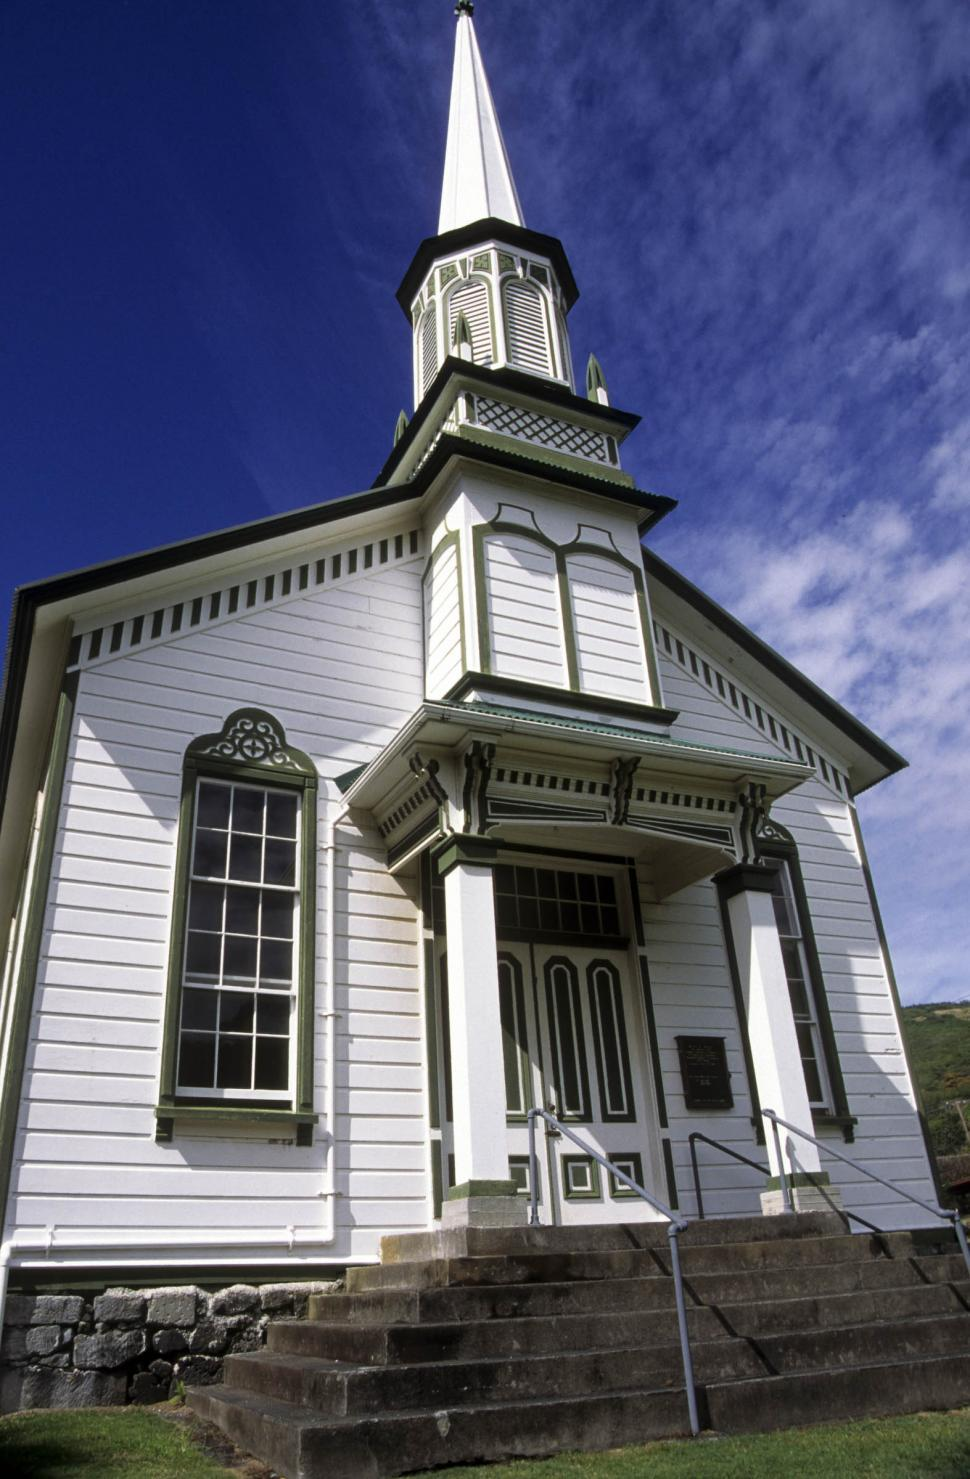 Download Free Stock HD Photo of rural church Online